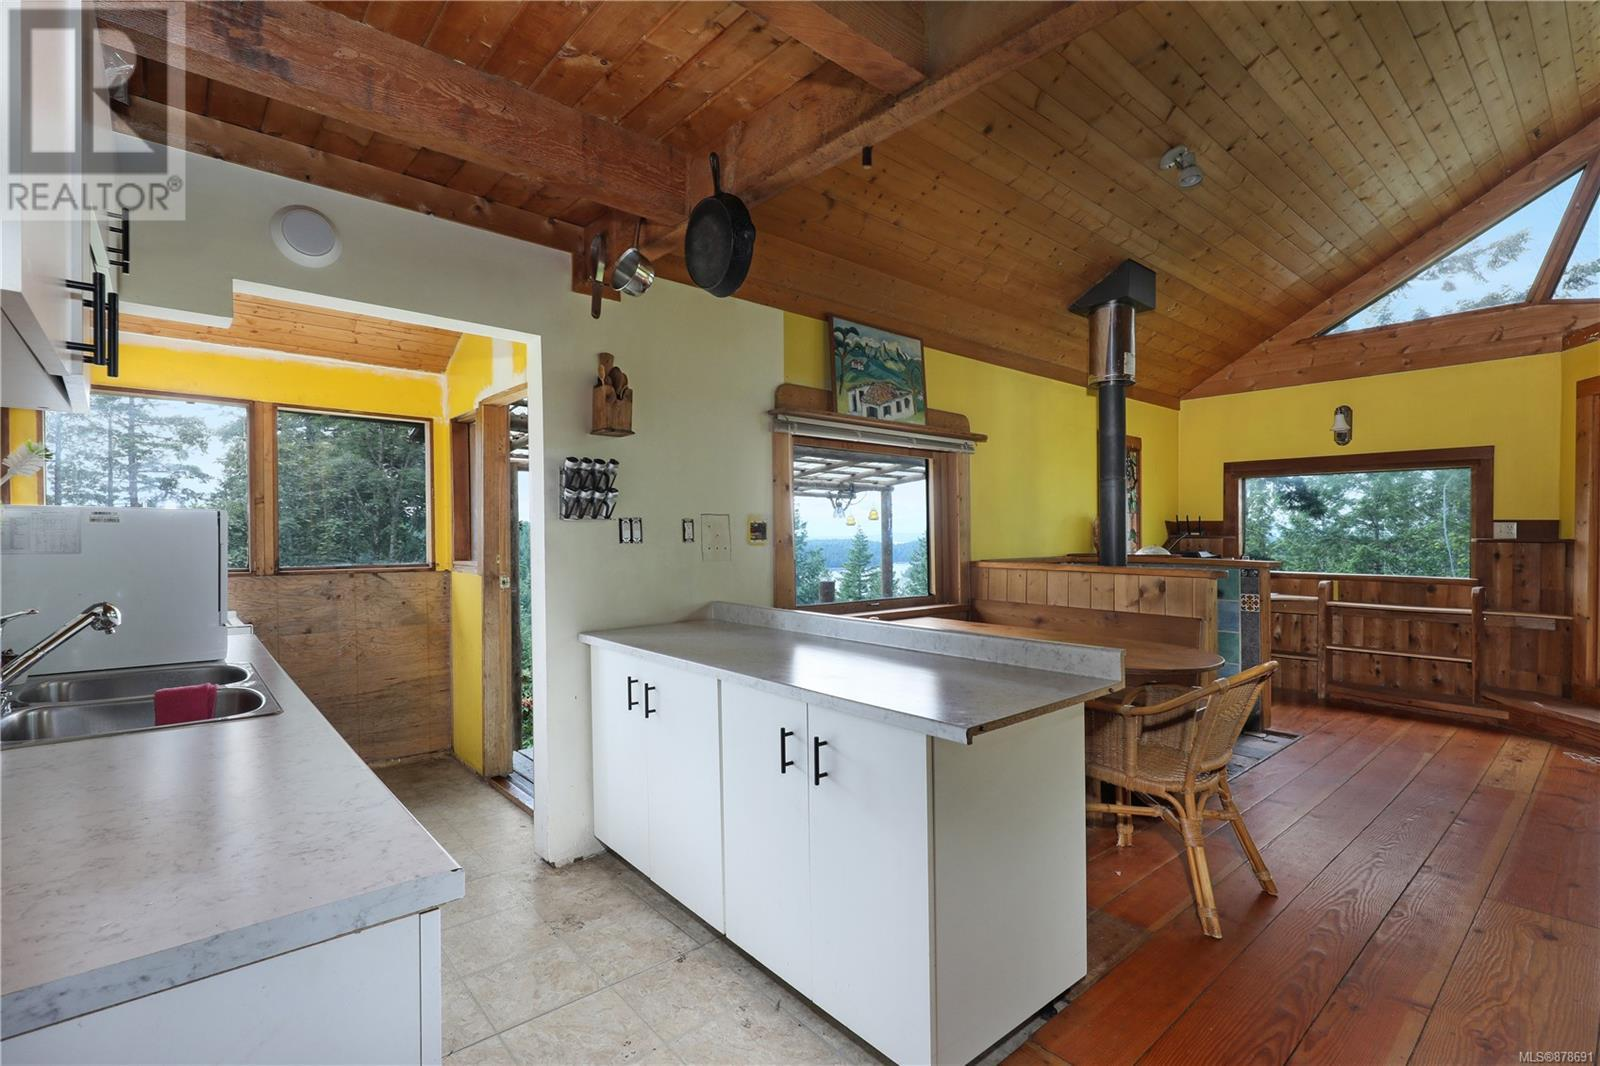 MLS® #878691 - Cortes Island House For sale Image #44